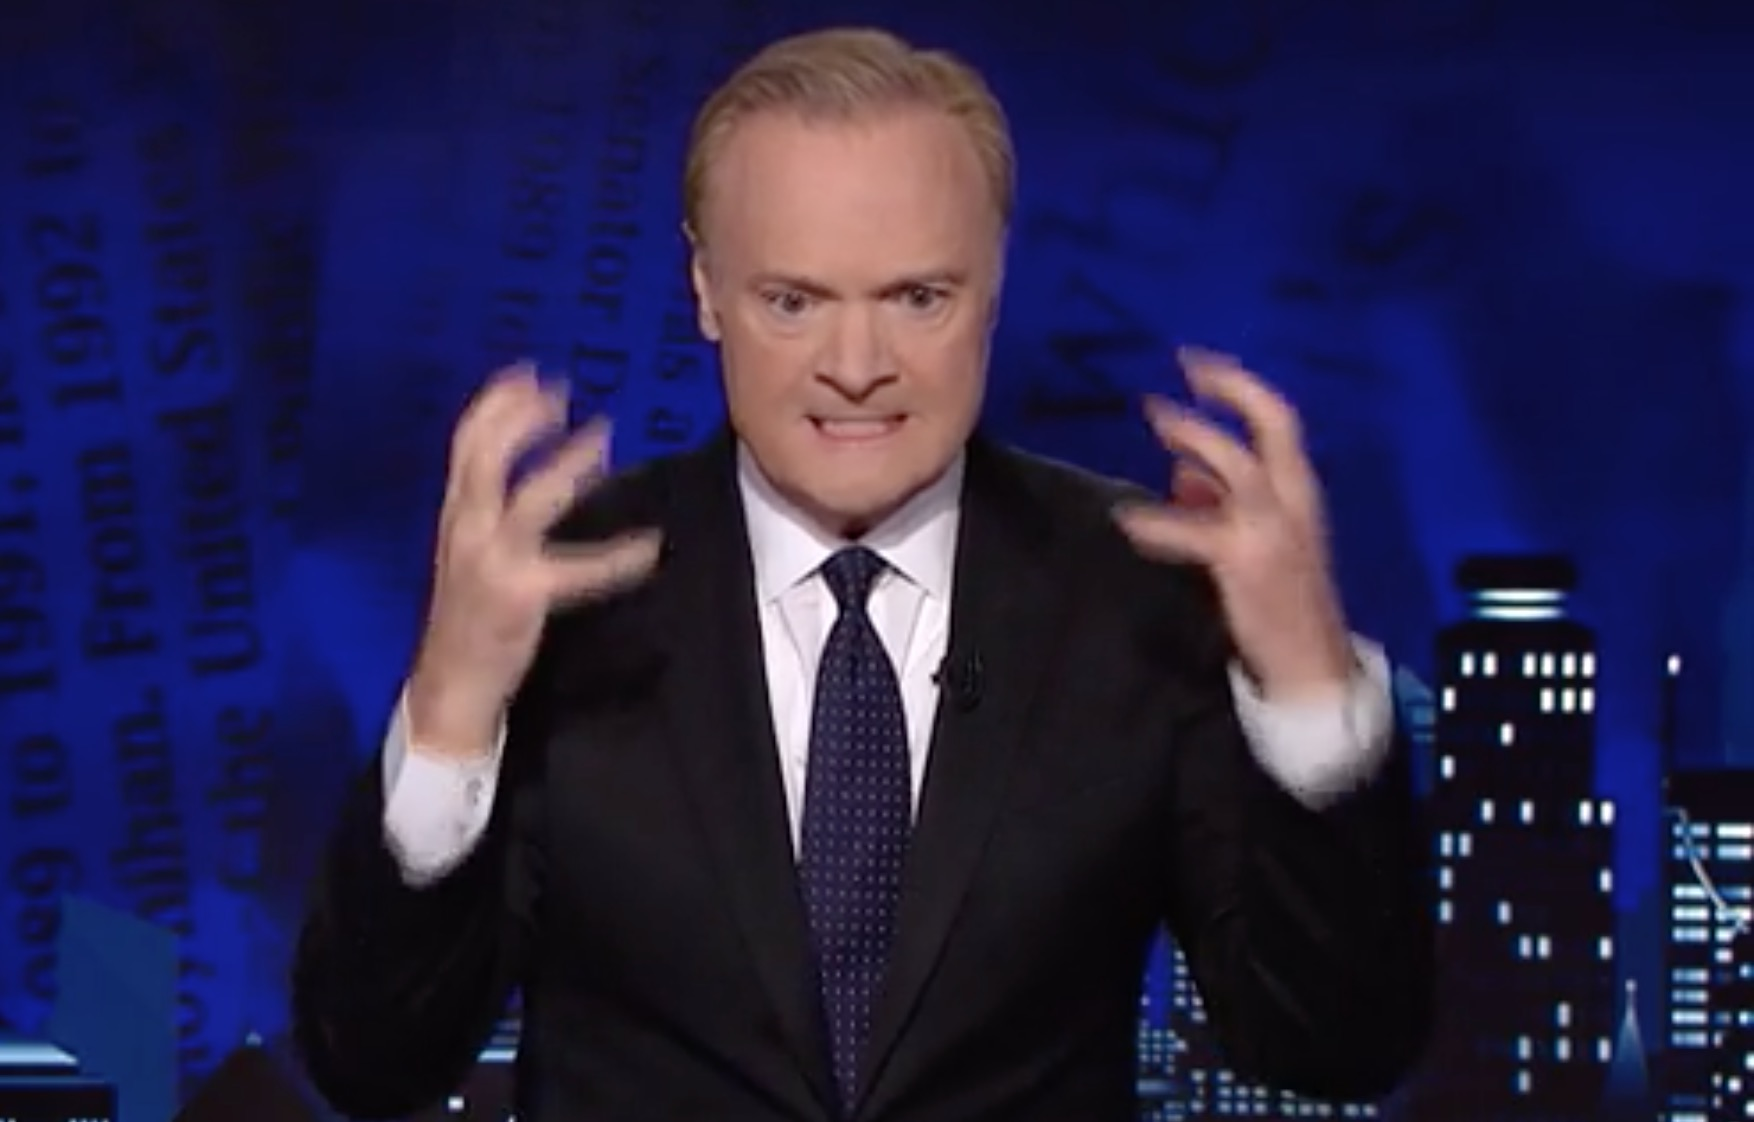 https://www.mediaite.com/tv/exclusive-watch-msnbcs-lawrence-odonnells-unhinged-outtakes-for-eight-crazy-minutes/